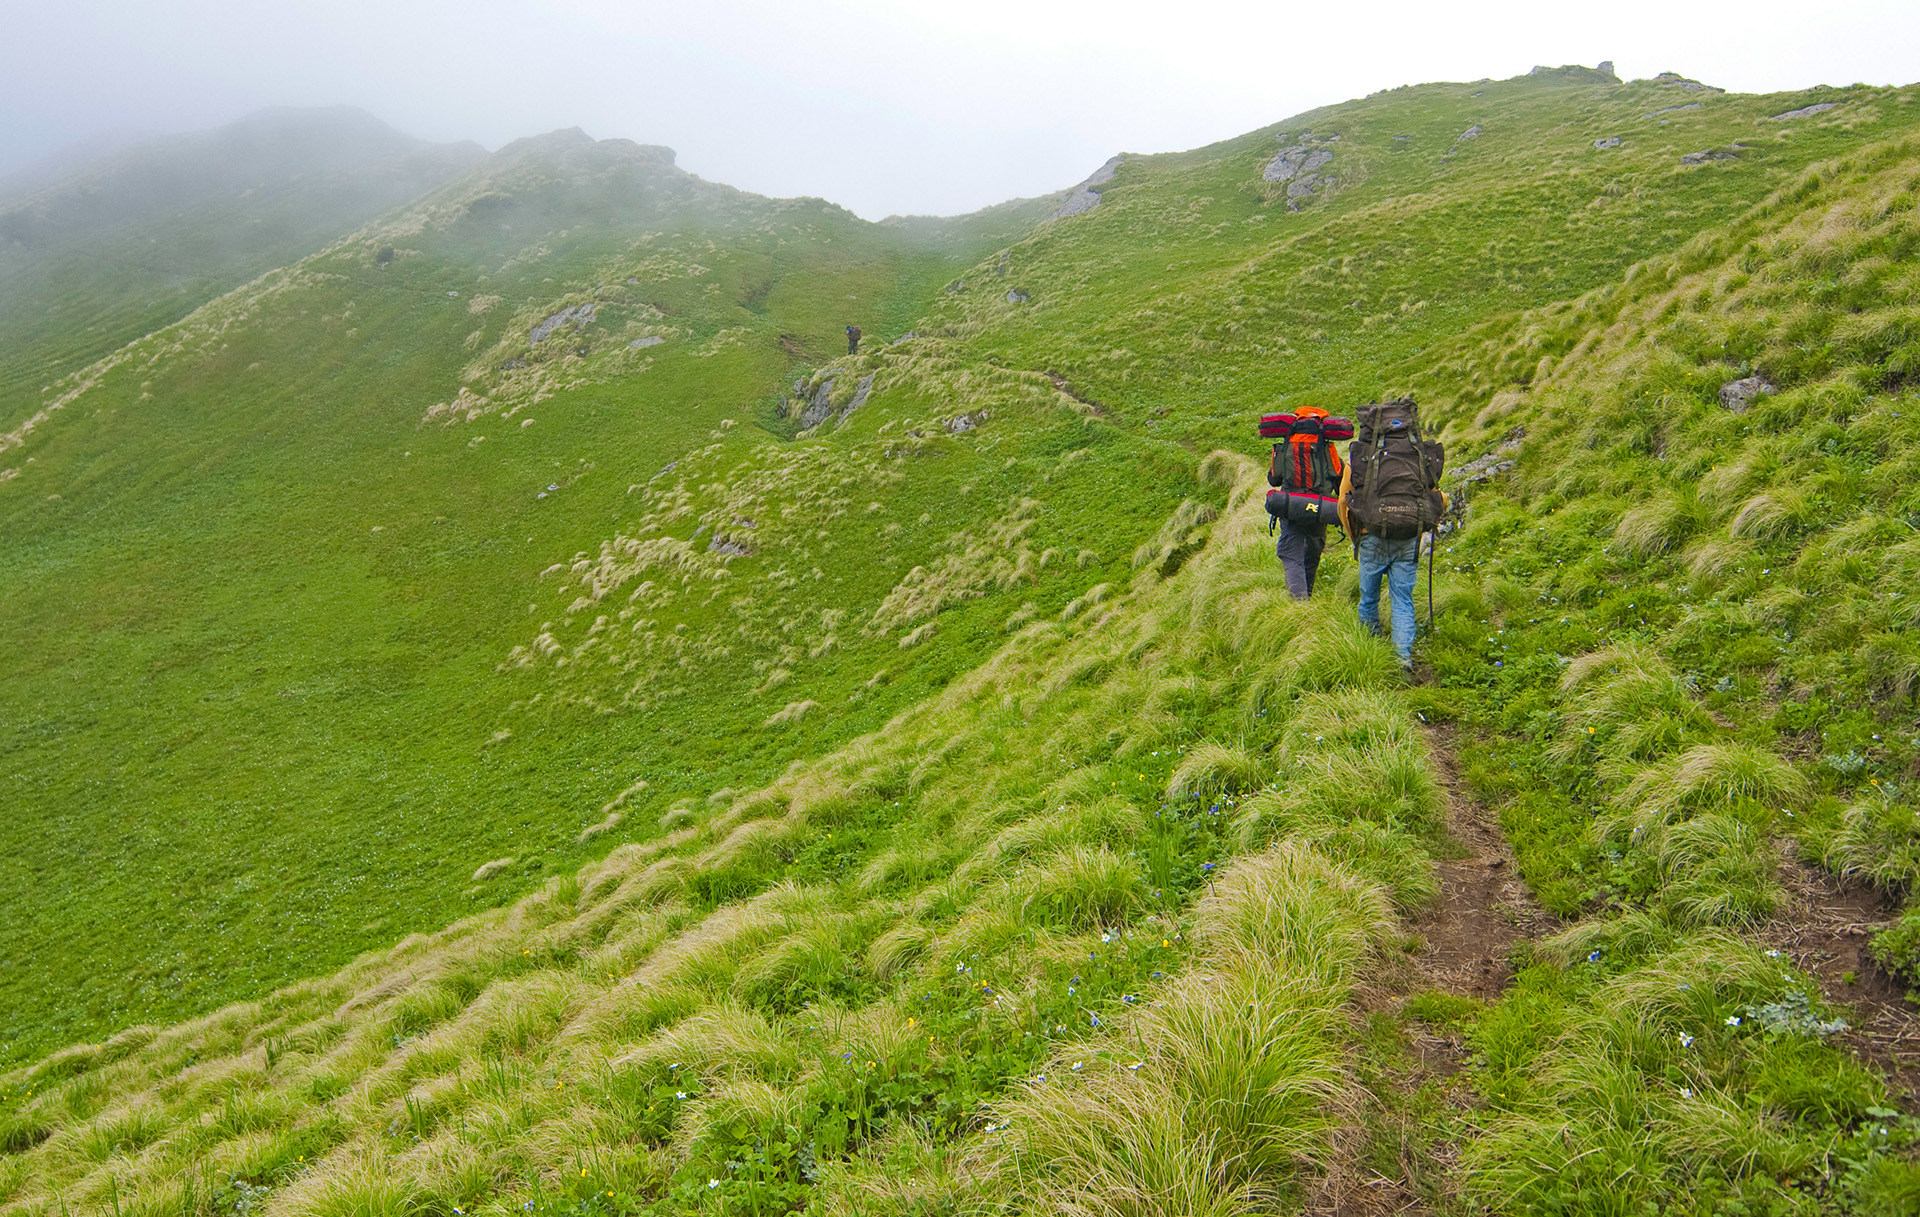 In April 2011, I made my annual pilgrimage to Himachal, arriving early, intending to beat the seasonal inflow of hikers and locals. My journey began in Sainj Valley known for its meadowed hillsides. A fortnight later, there was still no sign of the brown bear.